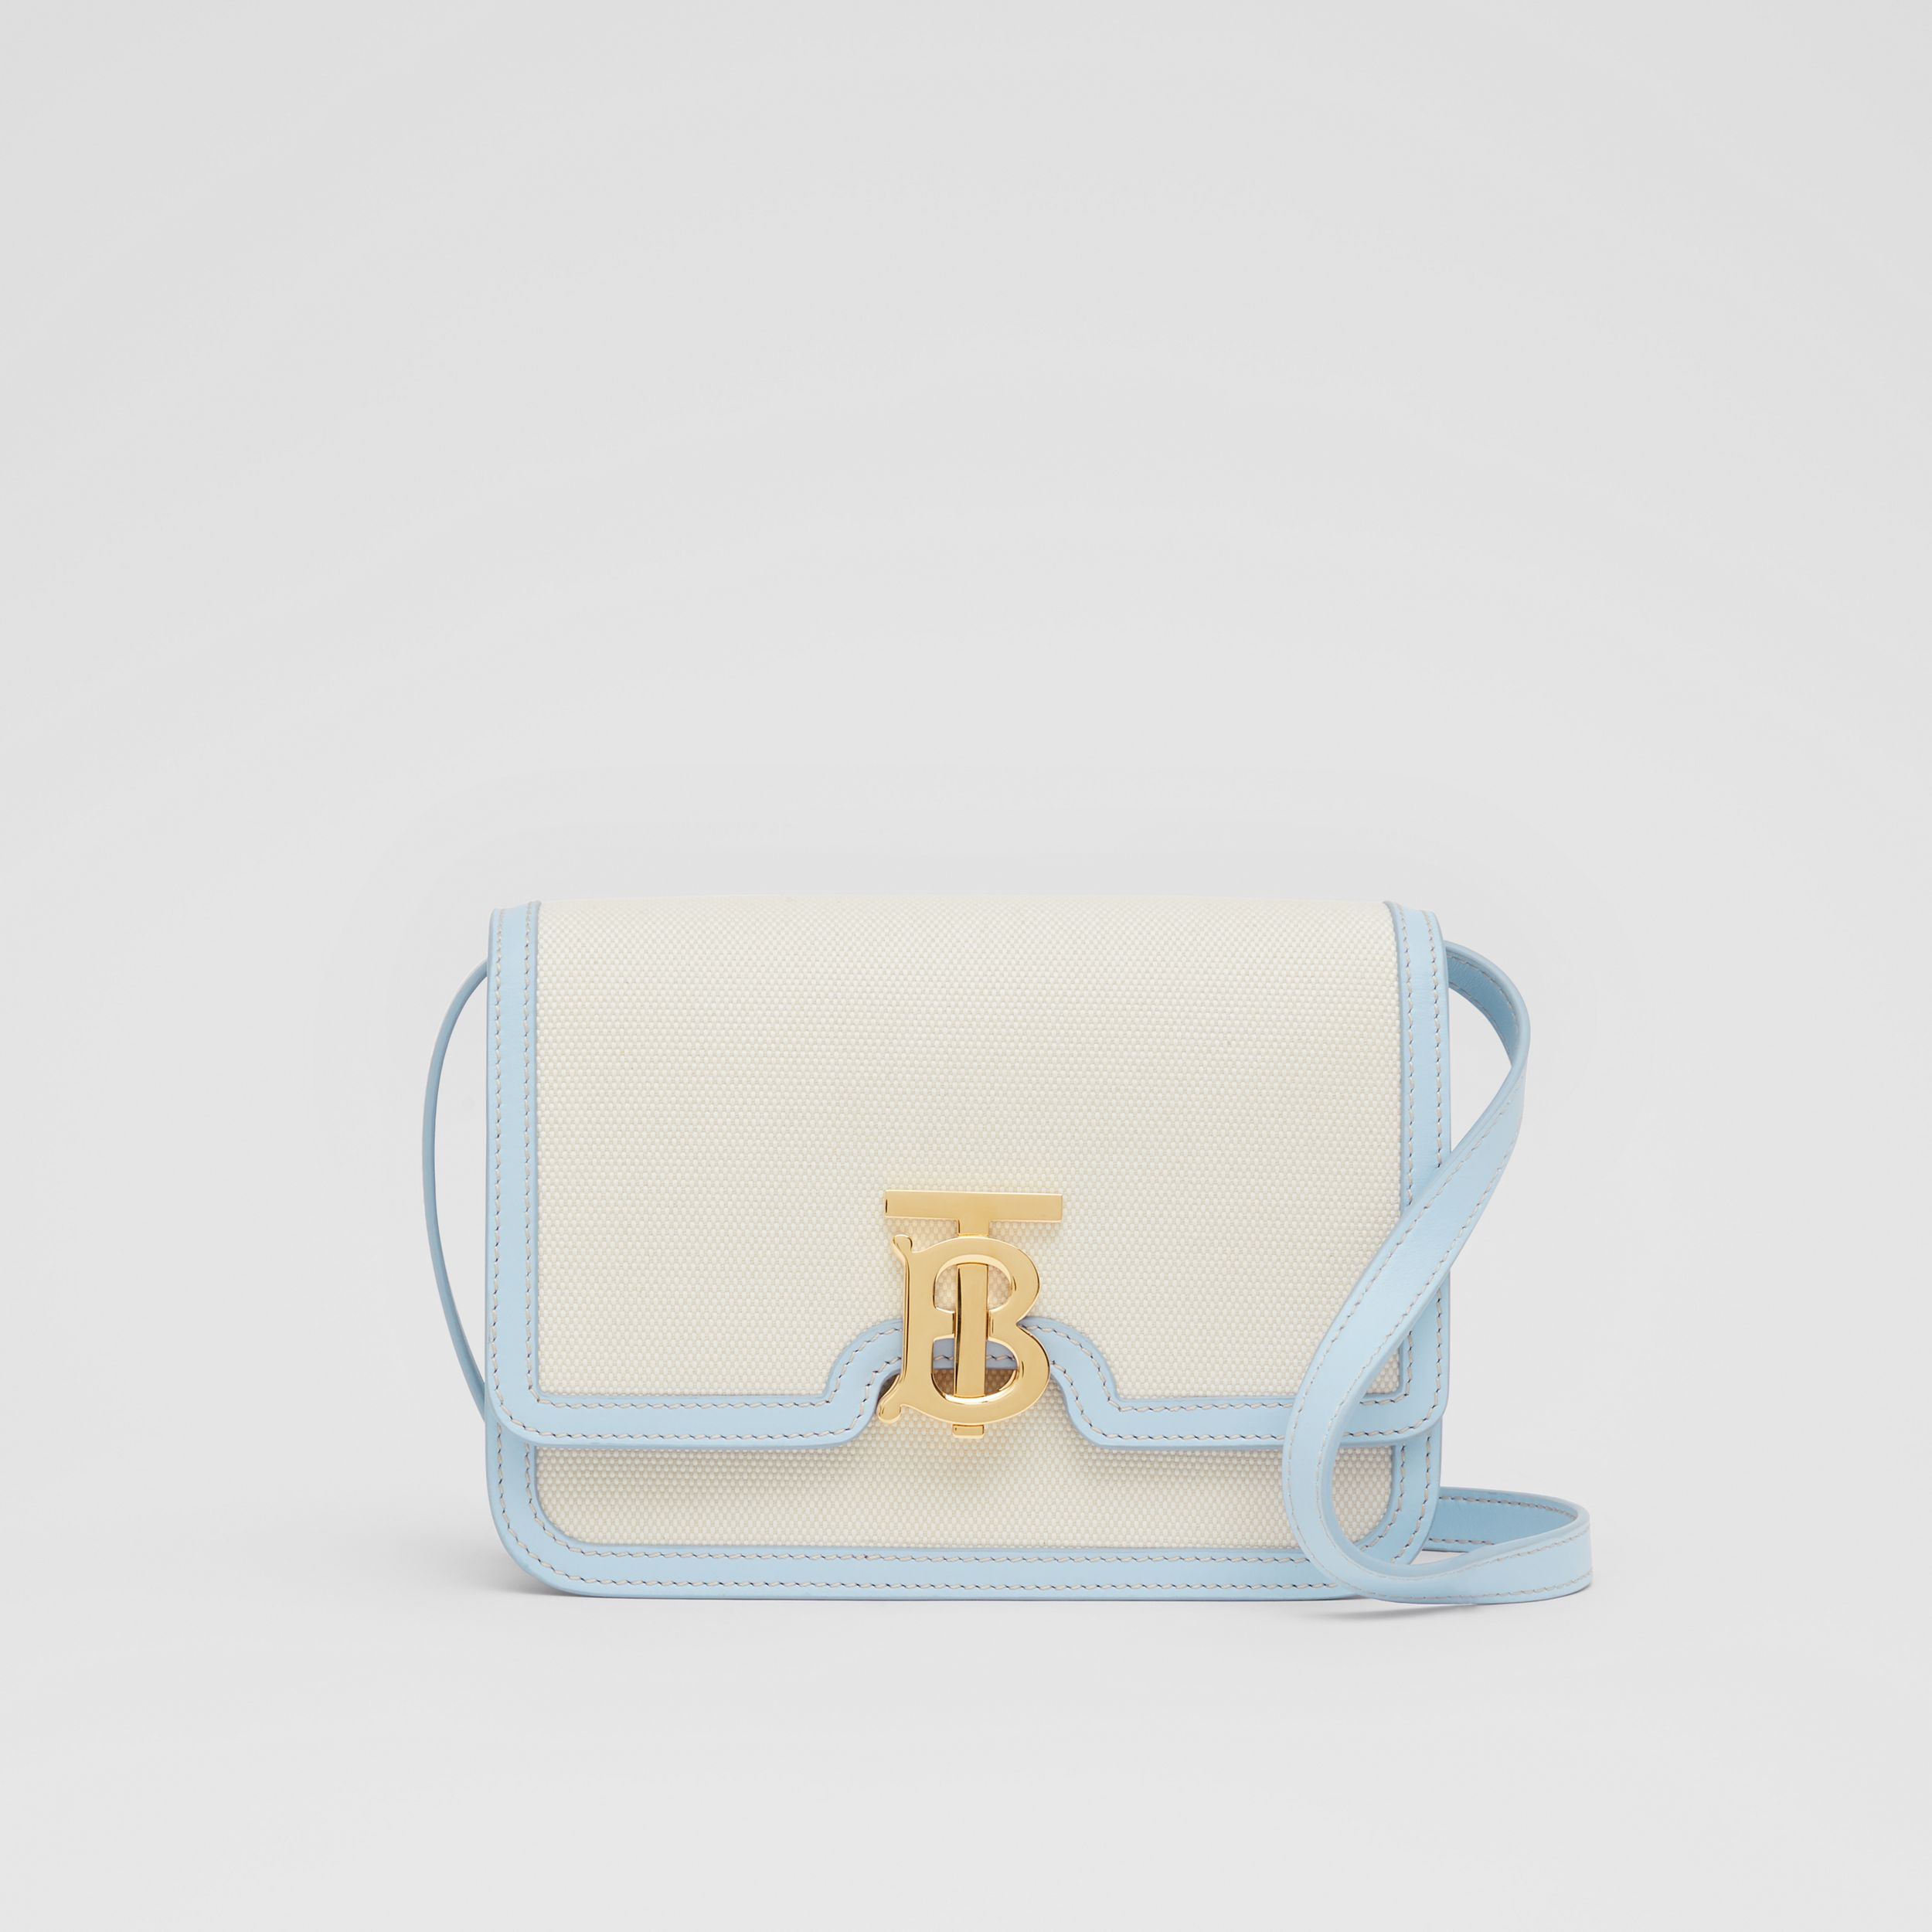 Small Two-tone Canvas and Leather TB Bag in Natural/pale Blue - Women | Burberry - 1